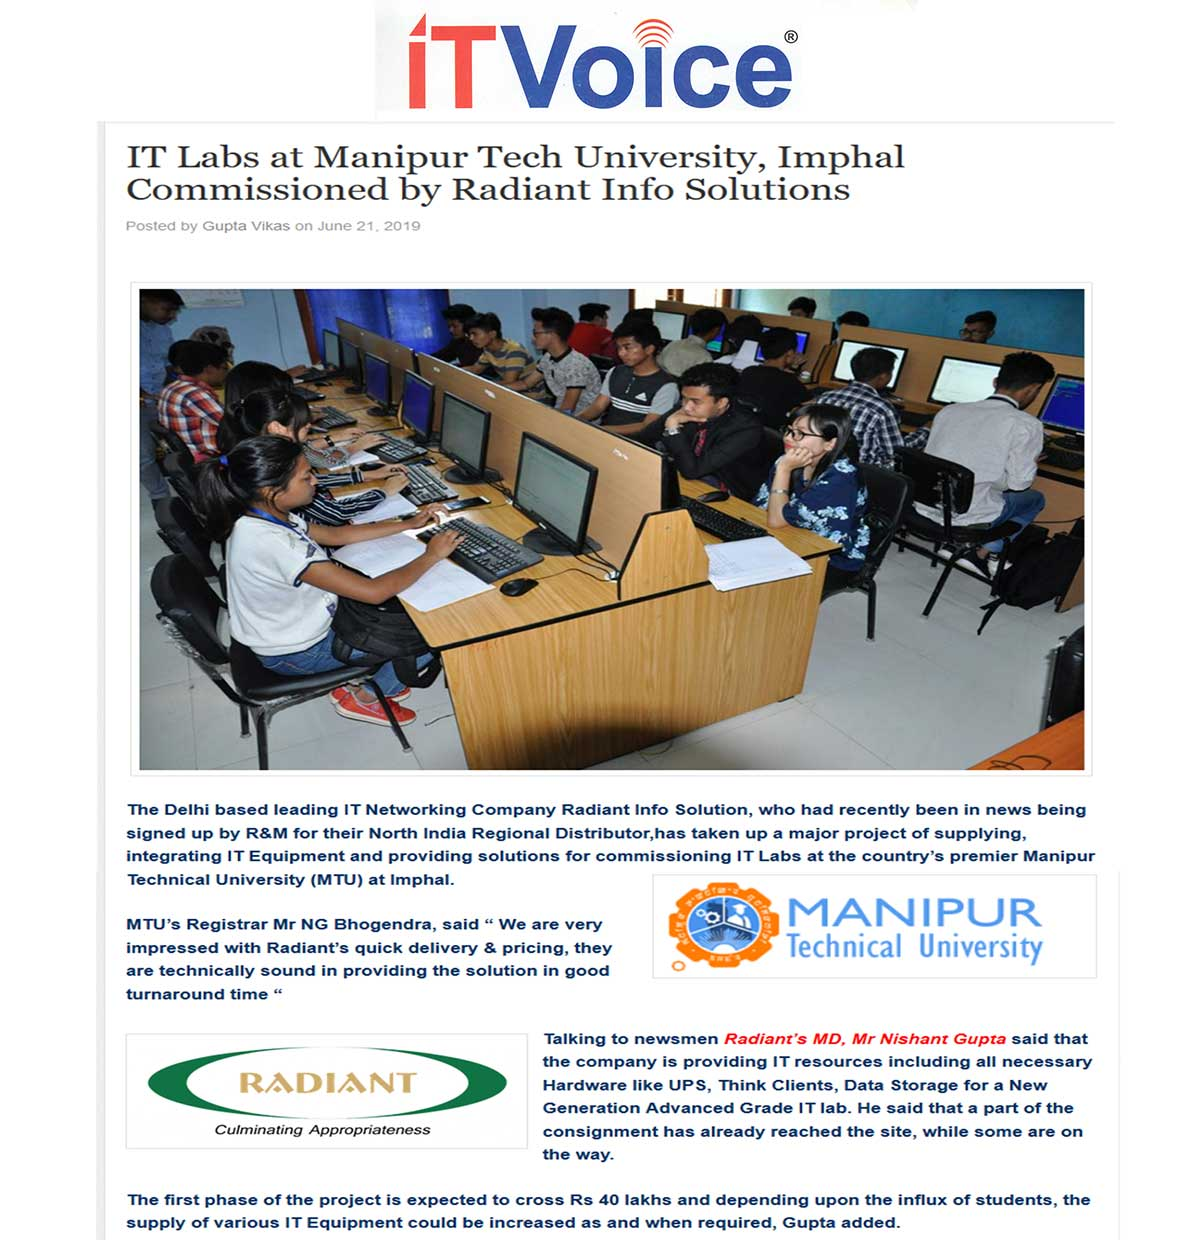 IT Labs ITVoice